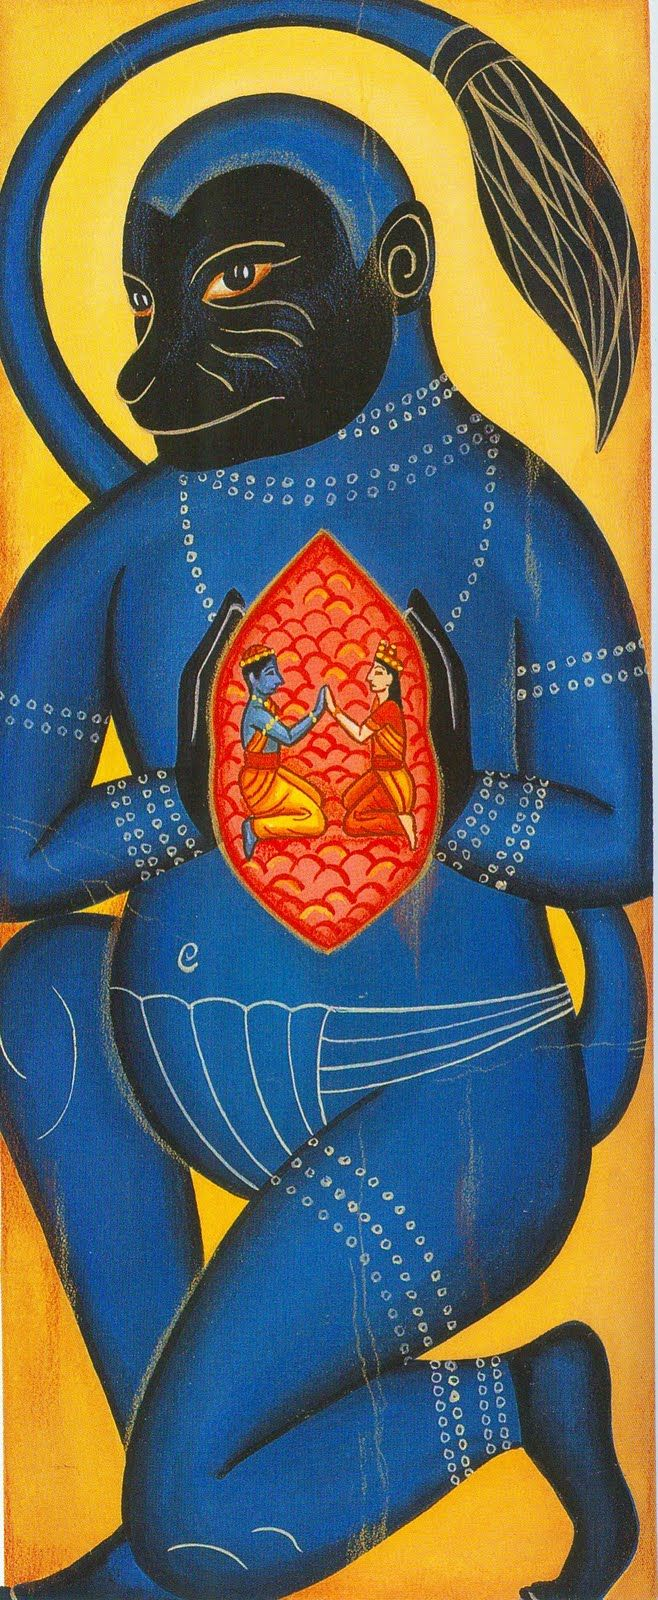 OM Shri Hanumate Namaha: I bow to Hamunan for protection from dark forces & for healing energy. Hanuman is the symbol of devotion & selfless action.